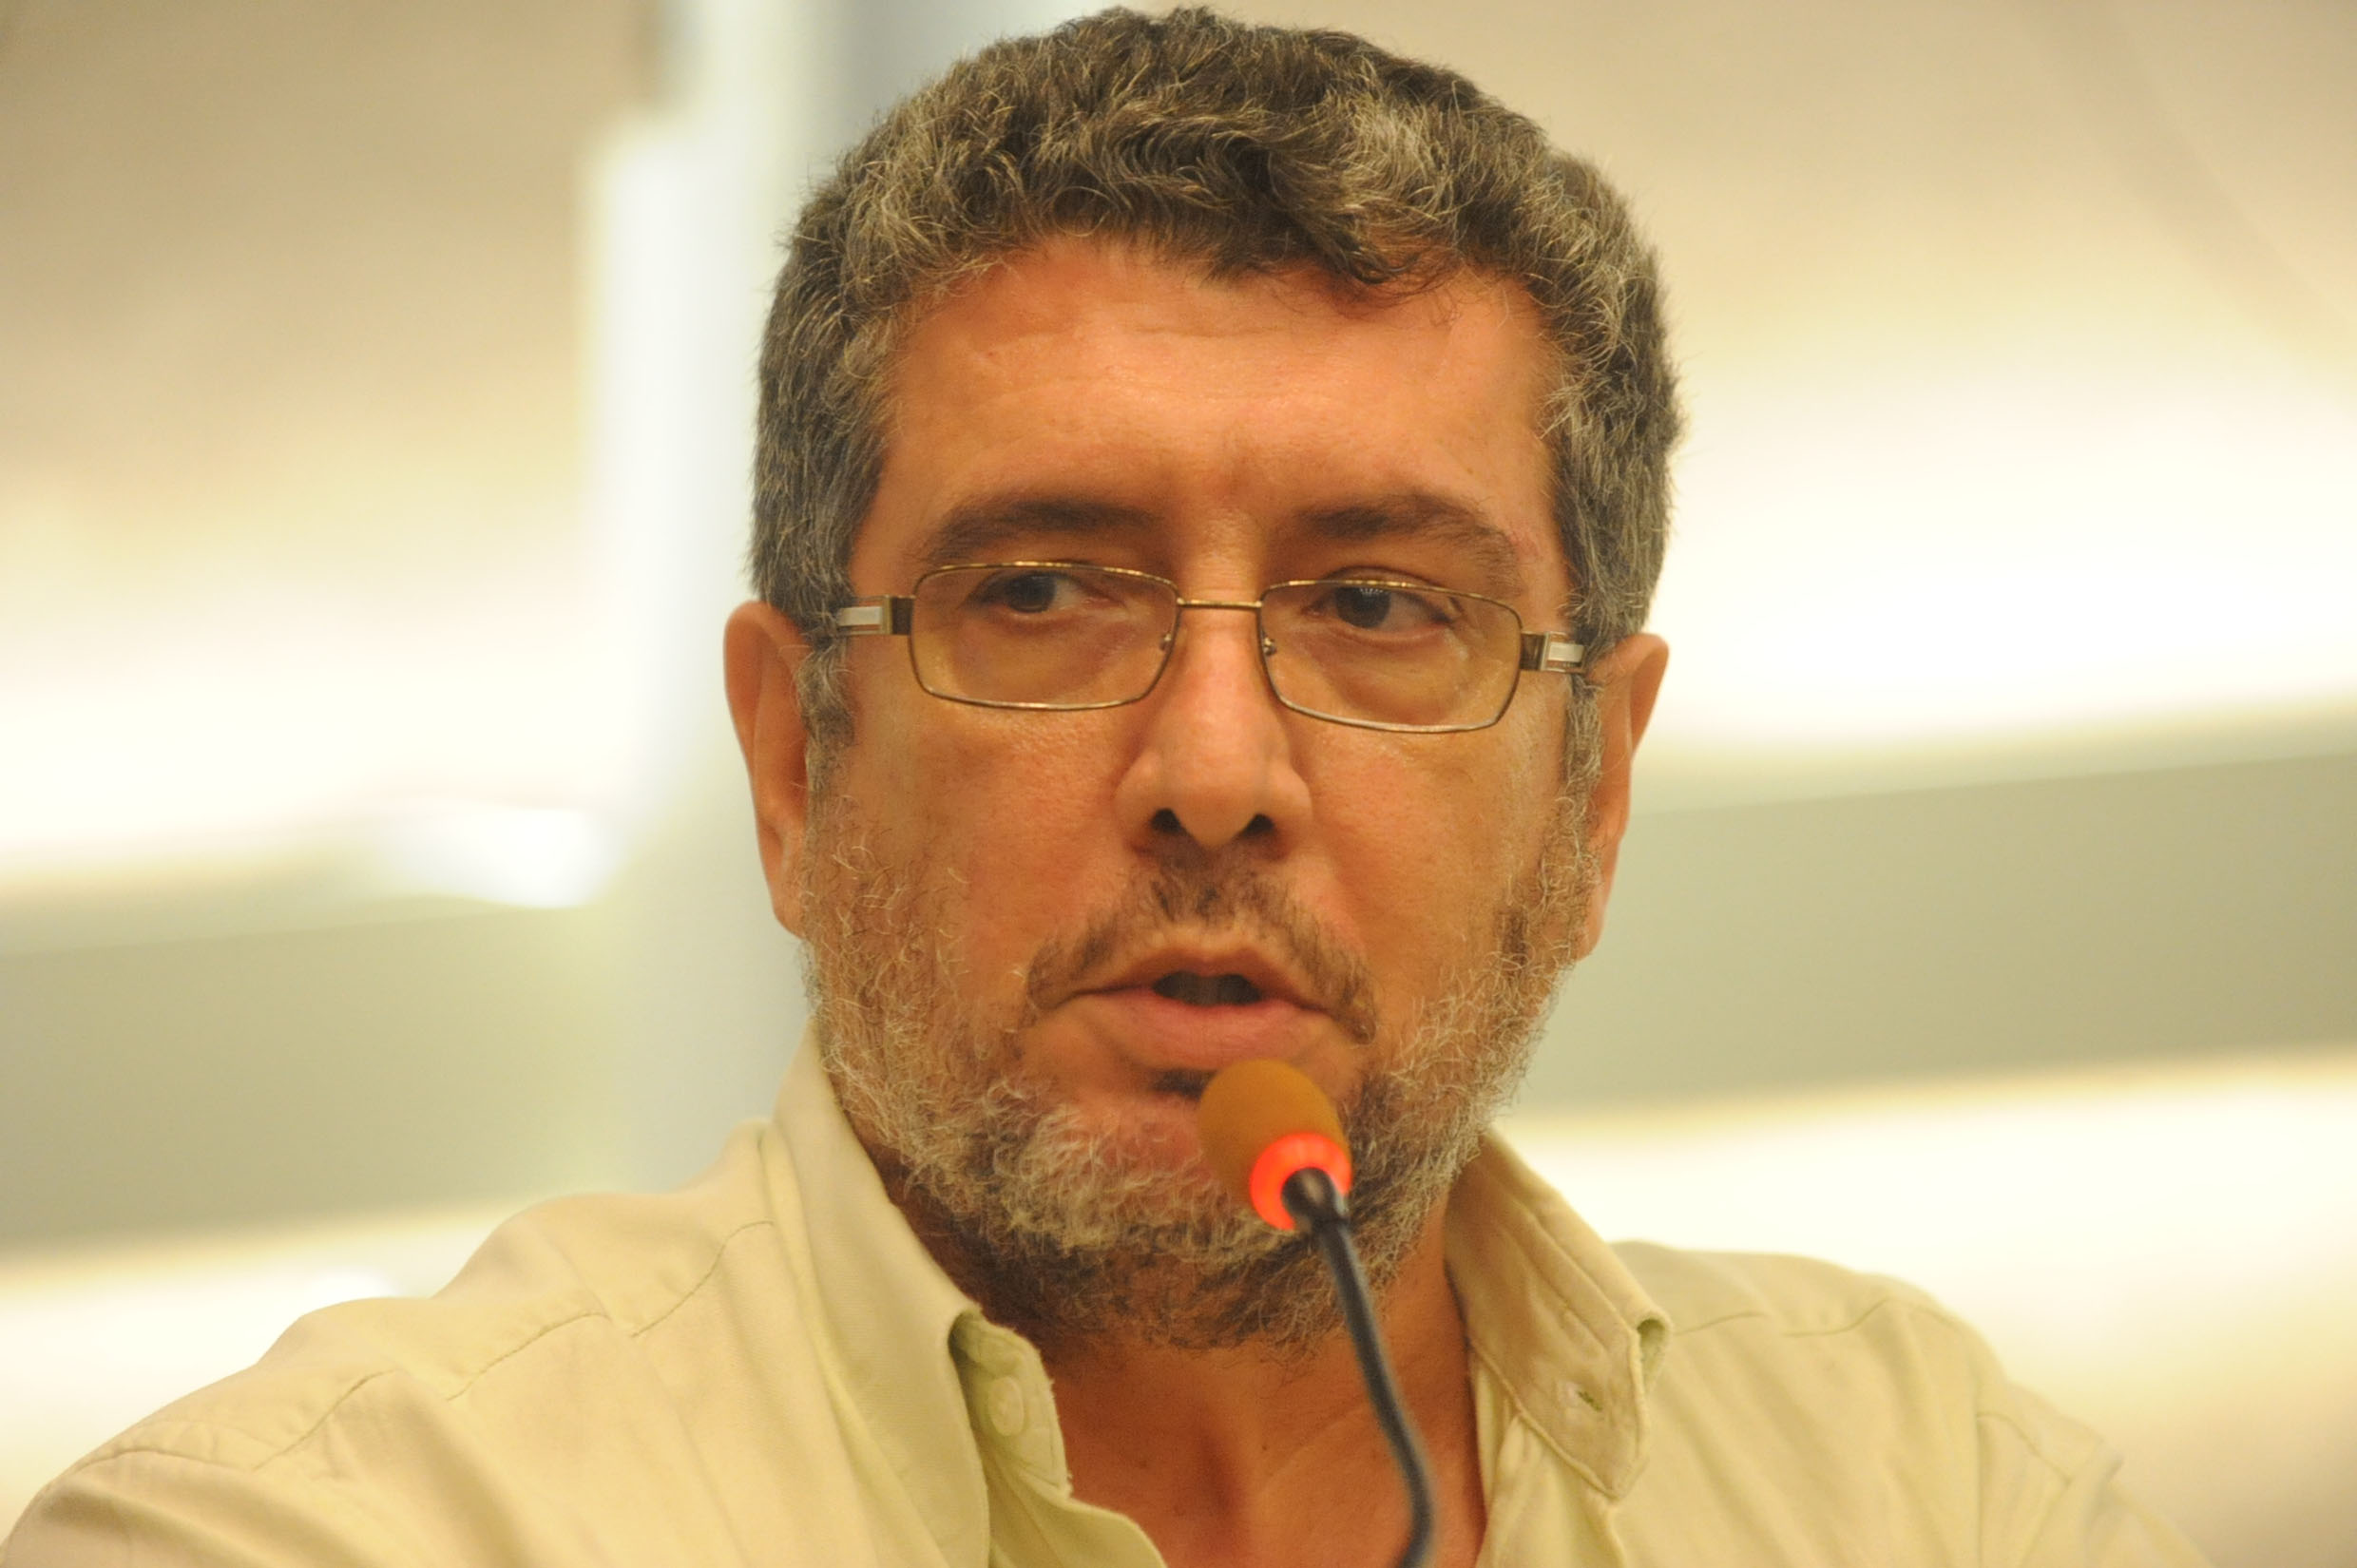 Antonio Luis de Andrade<a style='float:right' href='https://www3.al.sp.gov.br/repositorio/noticia/N-10-2013/fg131065.jpg' target=_blank><img src='/_img/material-file-download-white.png' width='14px' alt='Clique para baixar a imagem'></a>